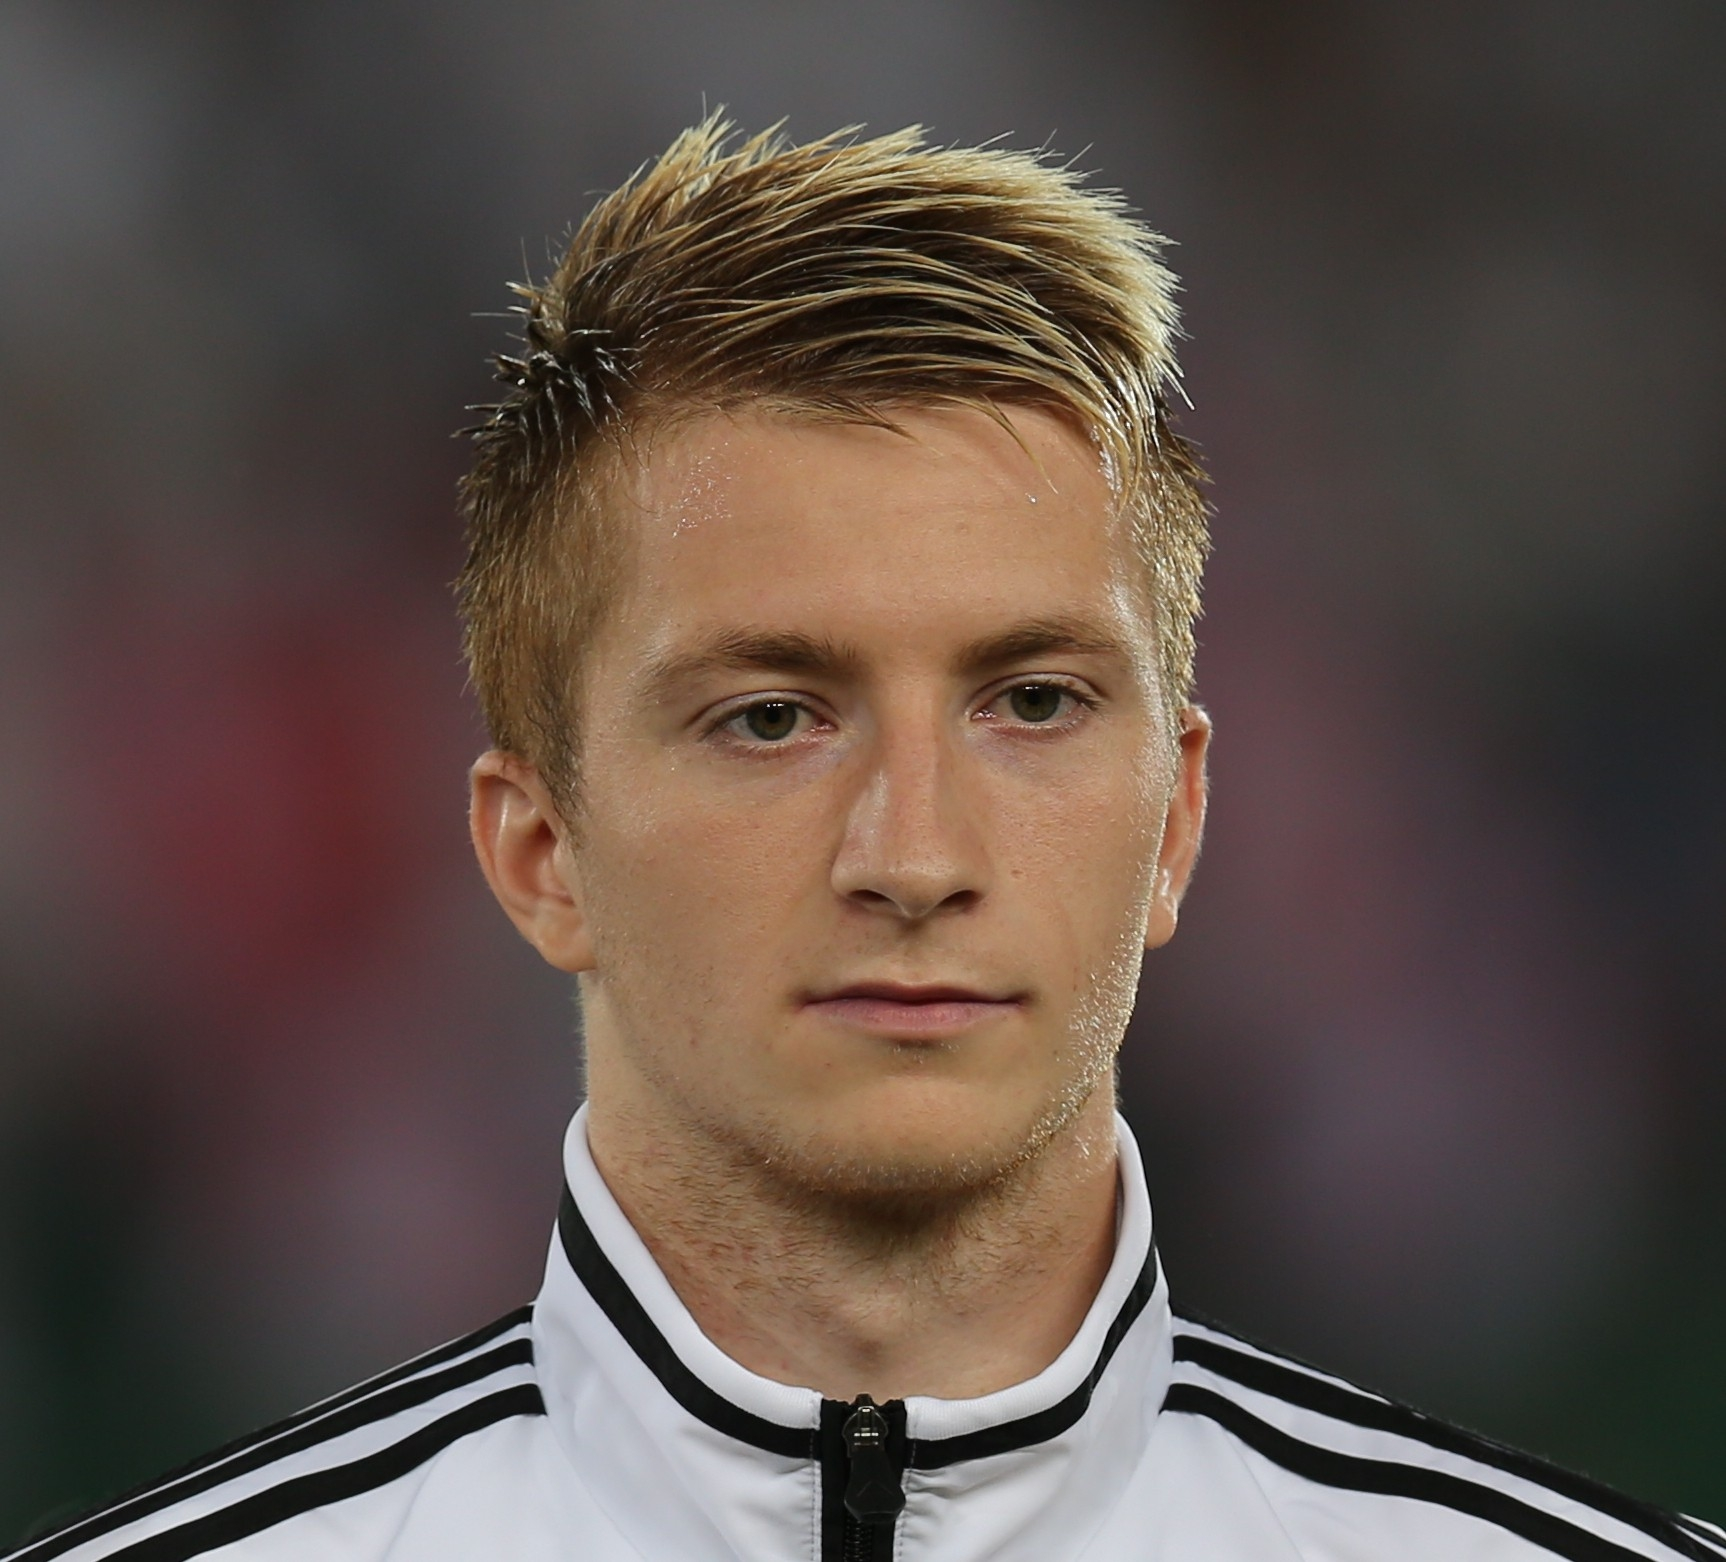 Marco Reus Net Worth